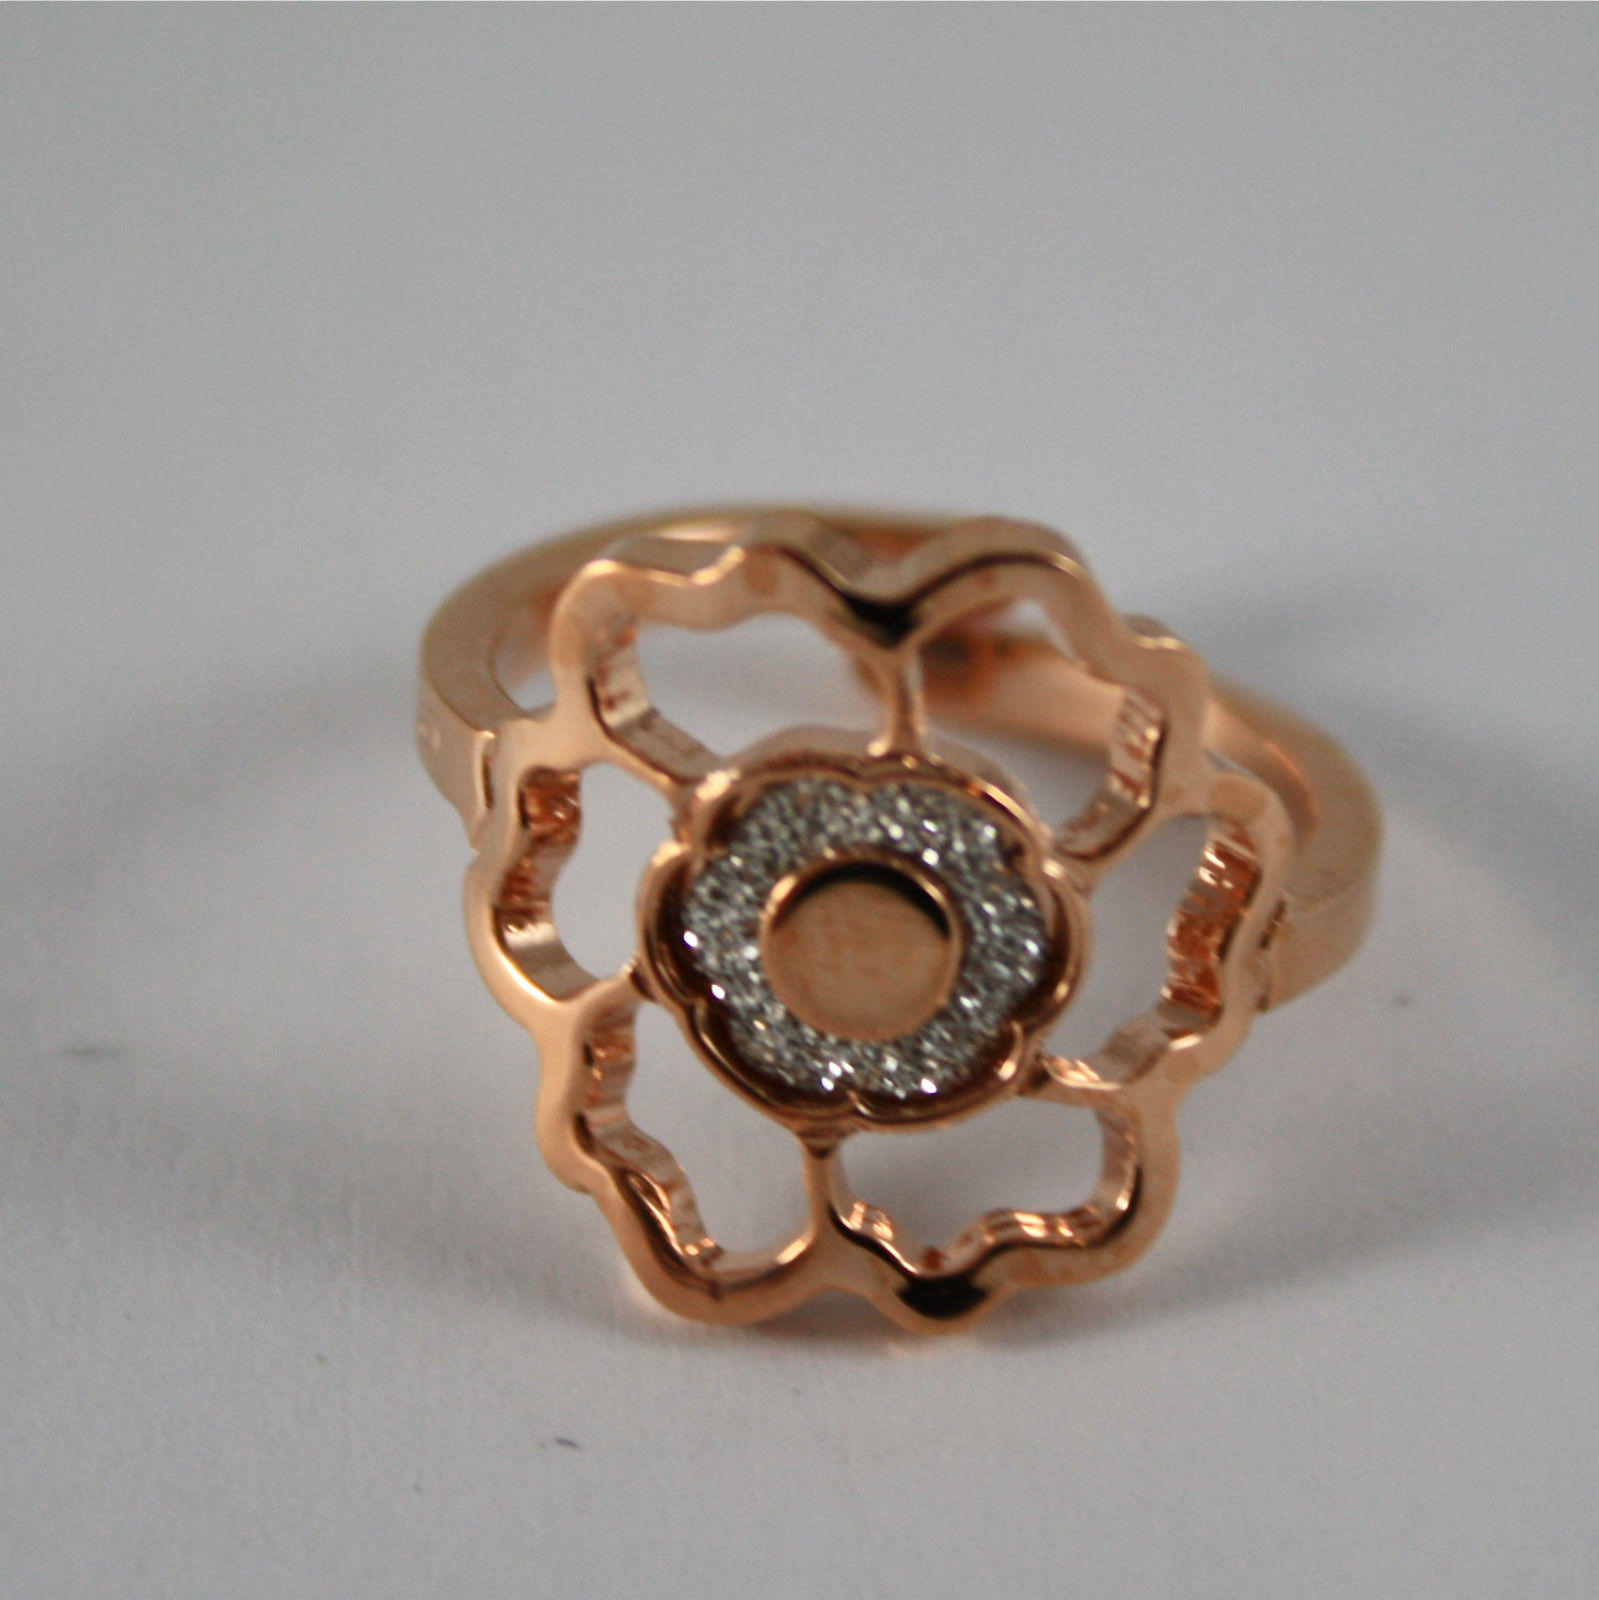 PINK GOLD PLATED BRONZE REBECCA RING WITH ROSE AND GLAM BPSARB01 ADJUSTABLE SIZE